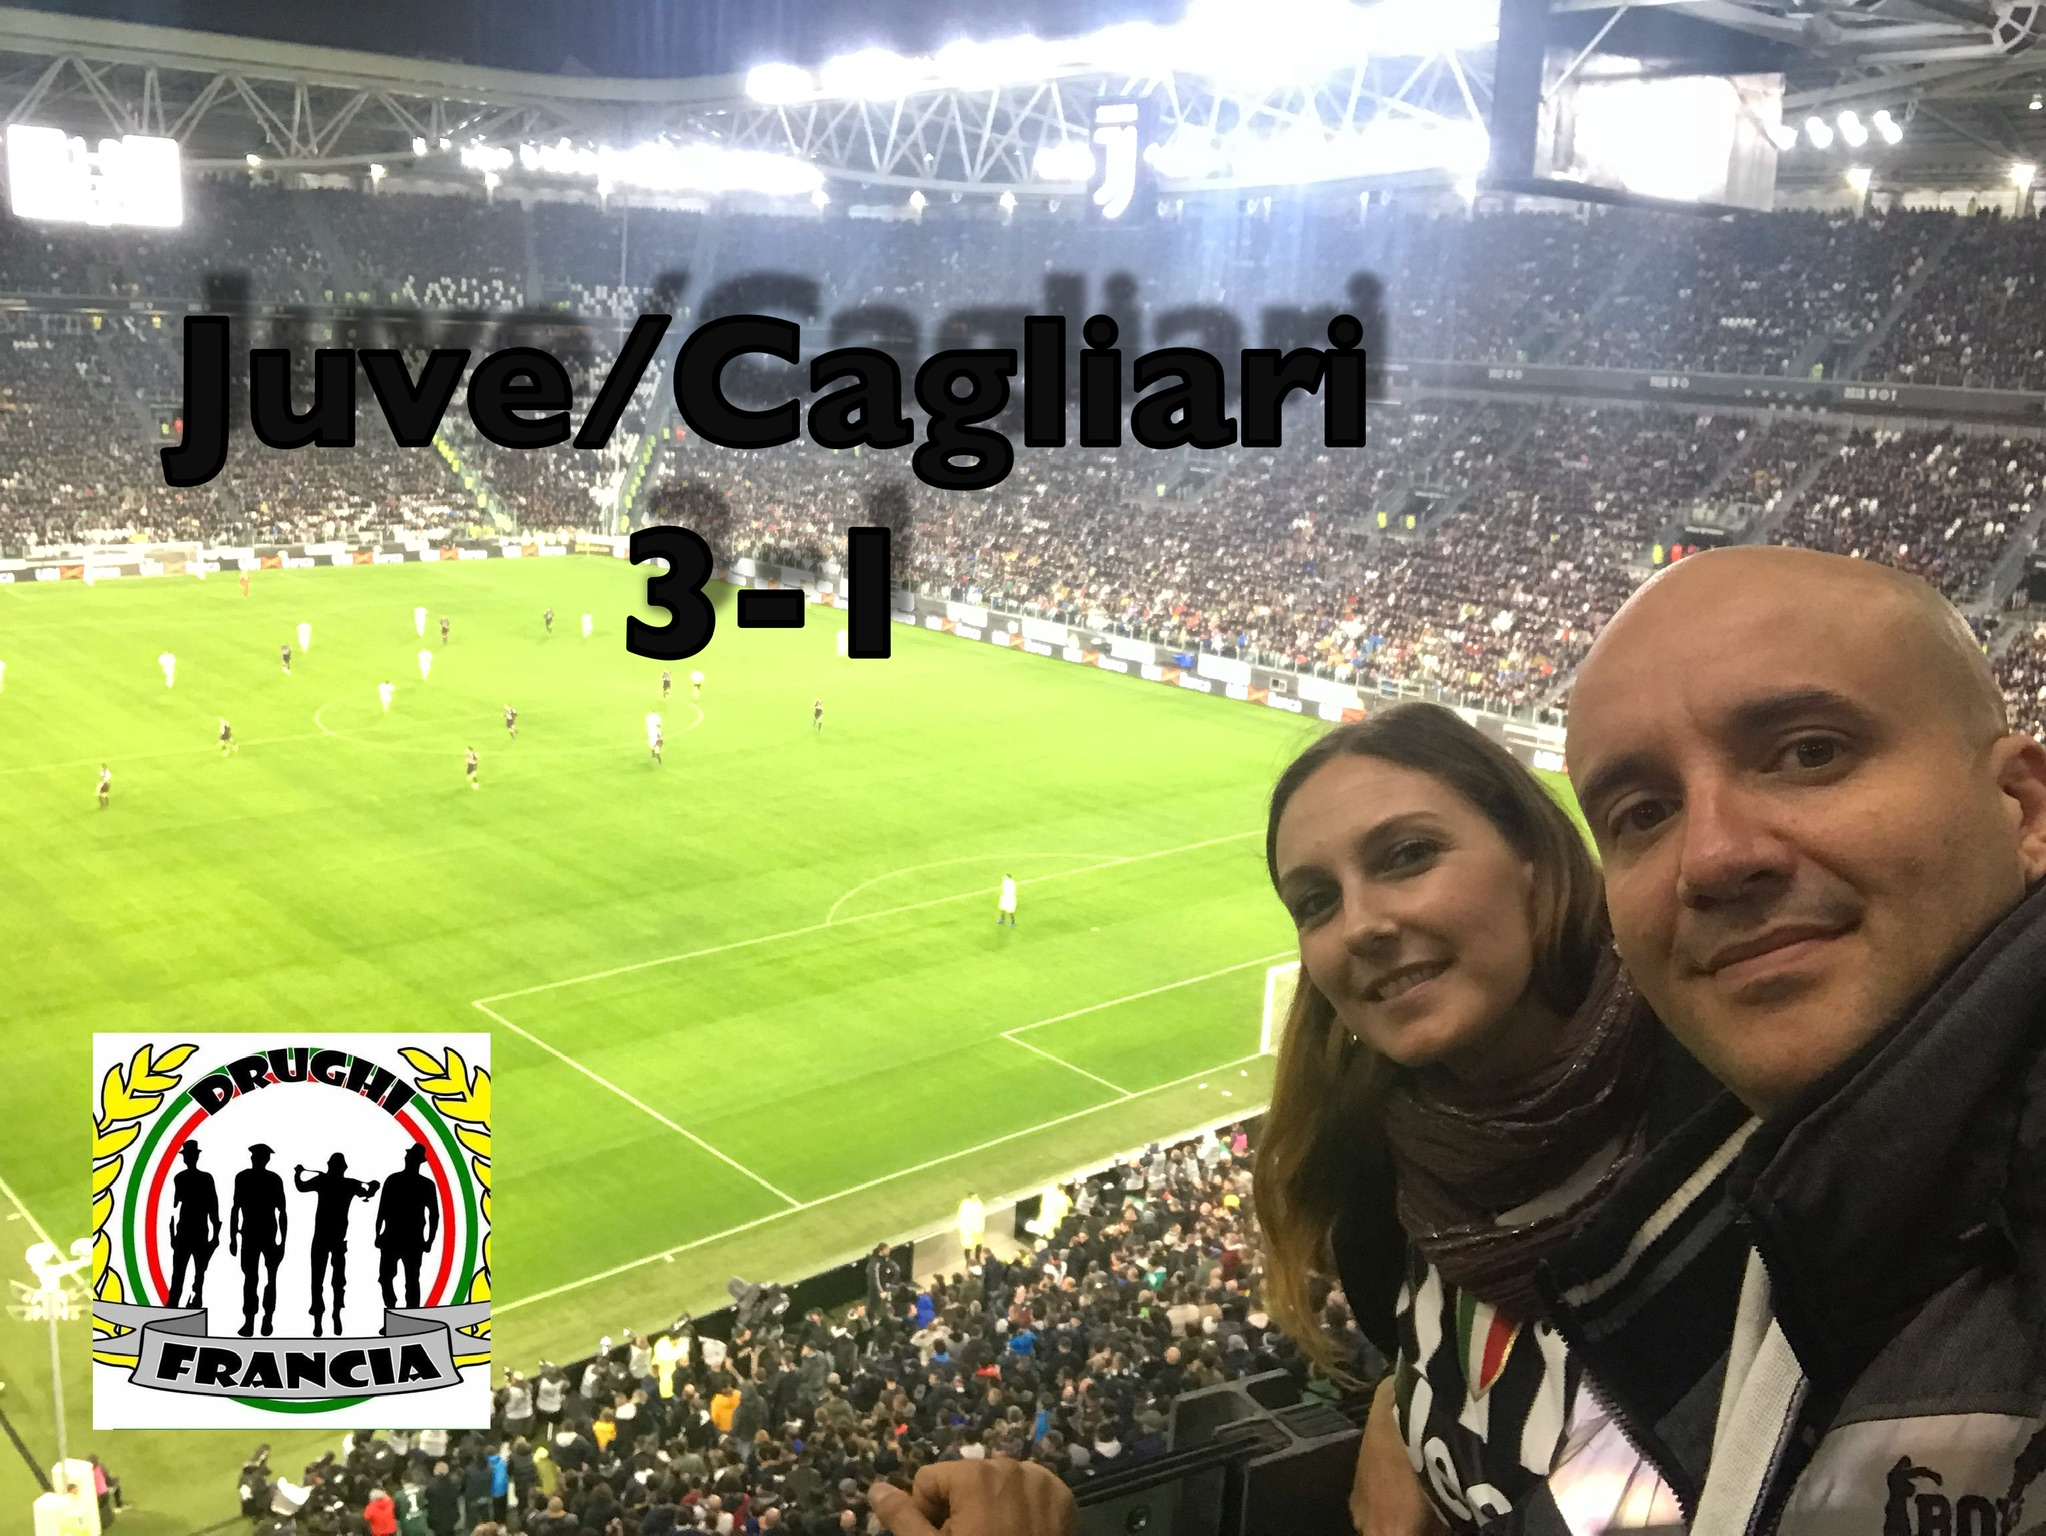 Taxis Tifosi Juventini à l'Allianz Stadium le 03/11/18